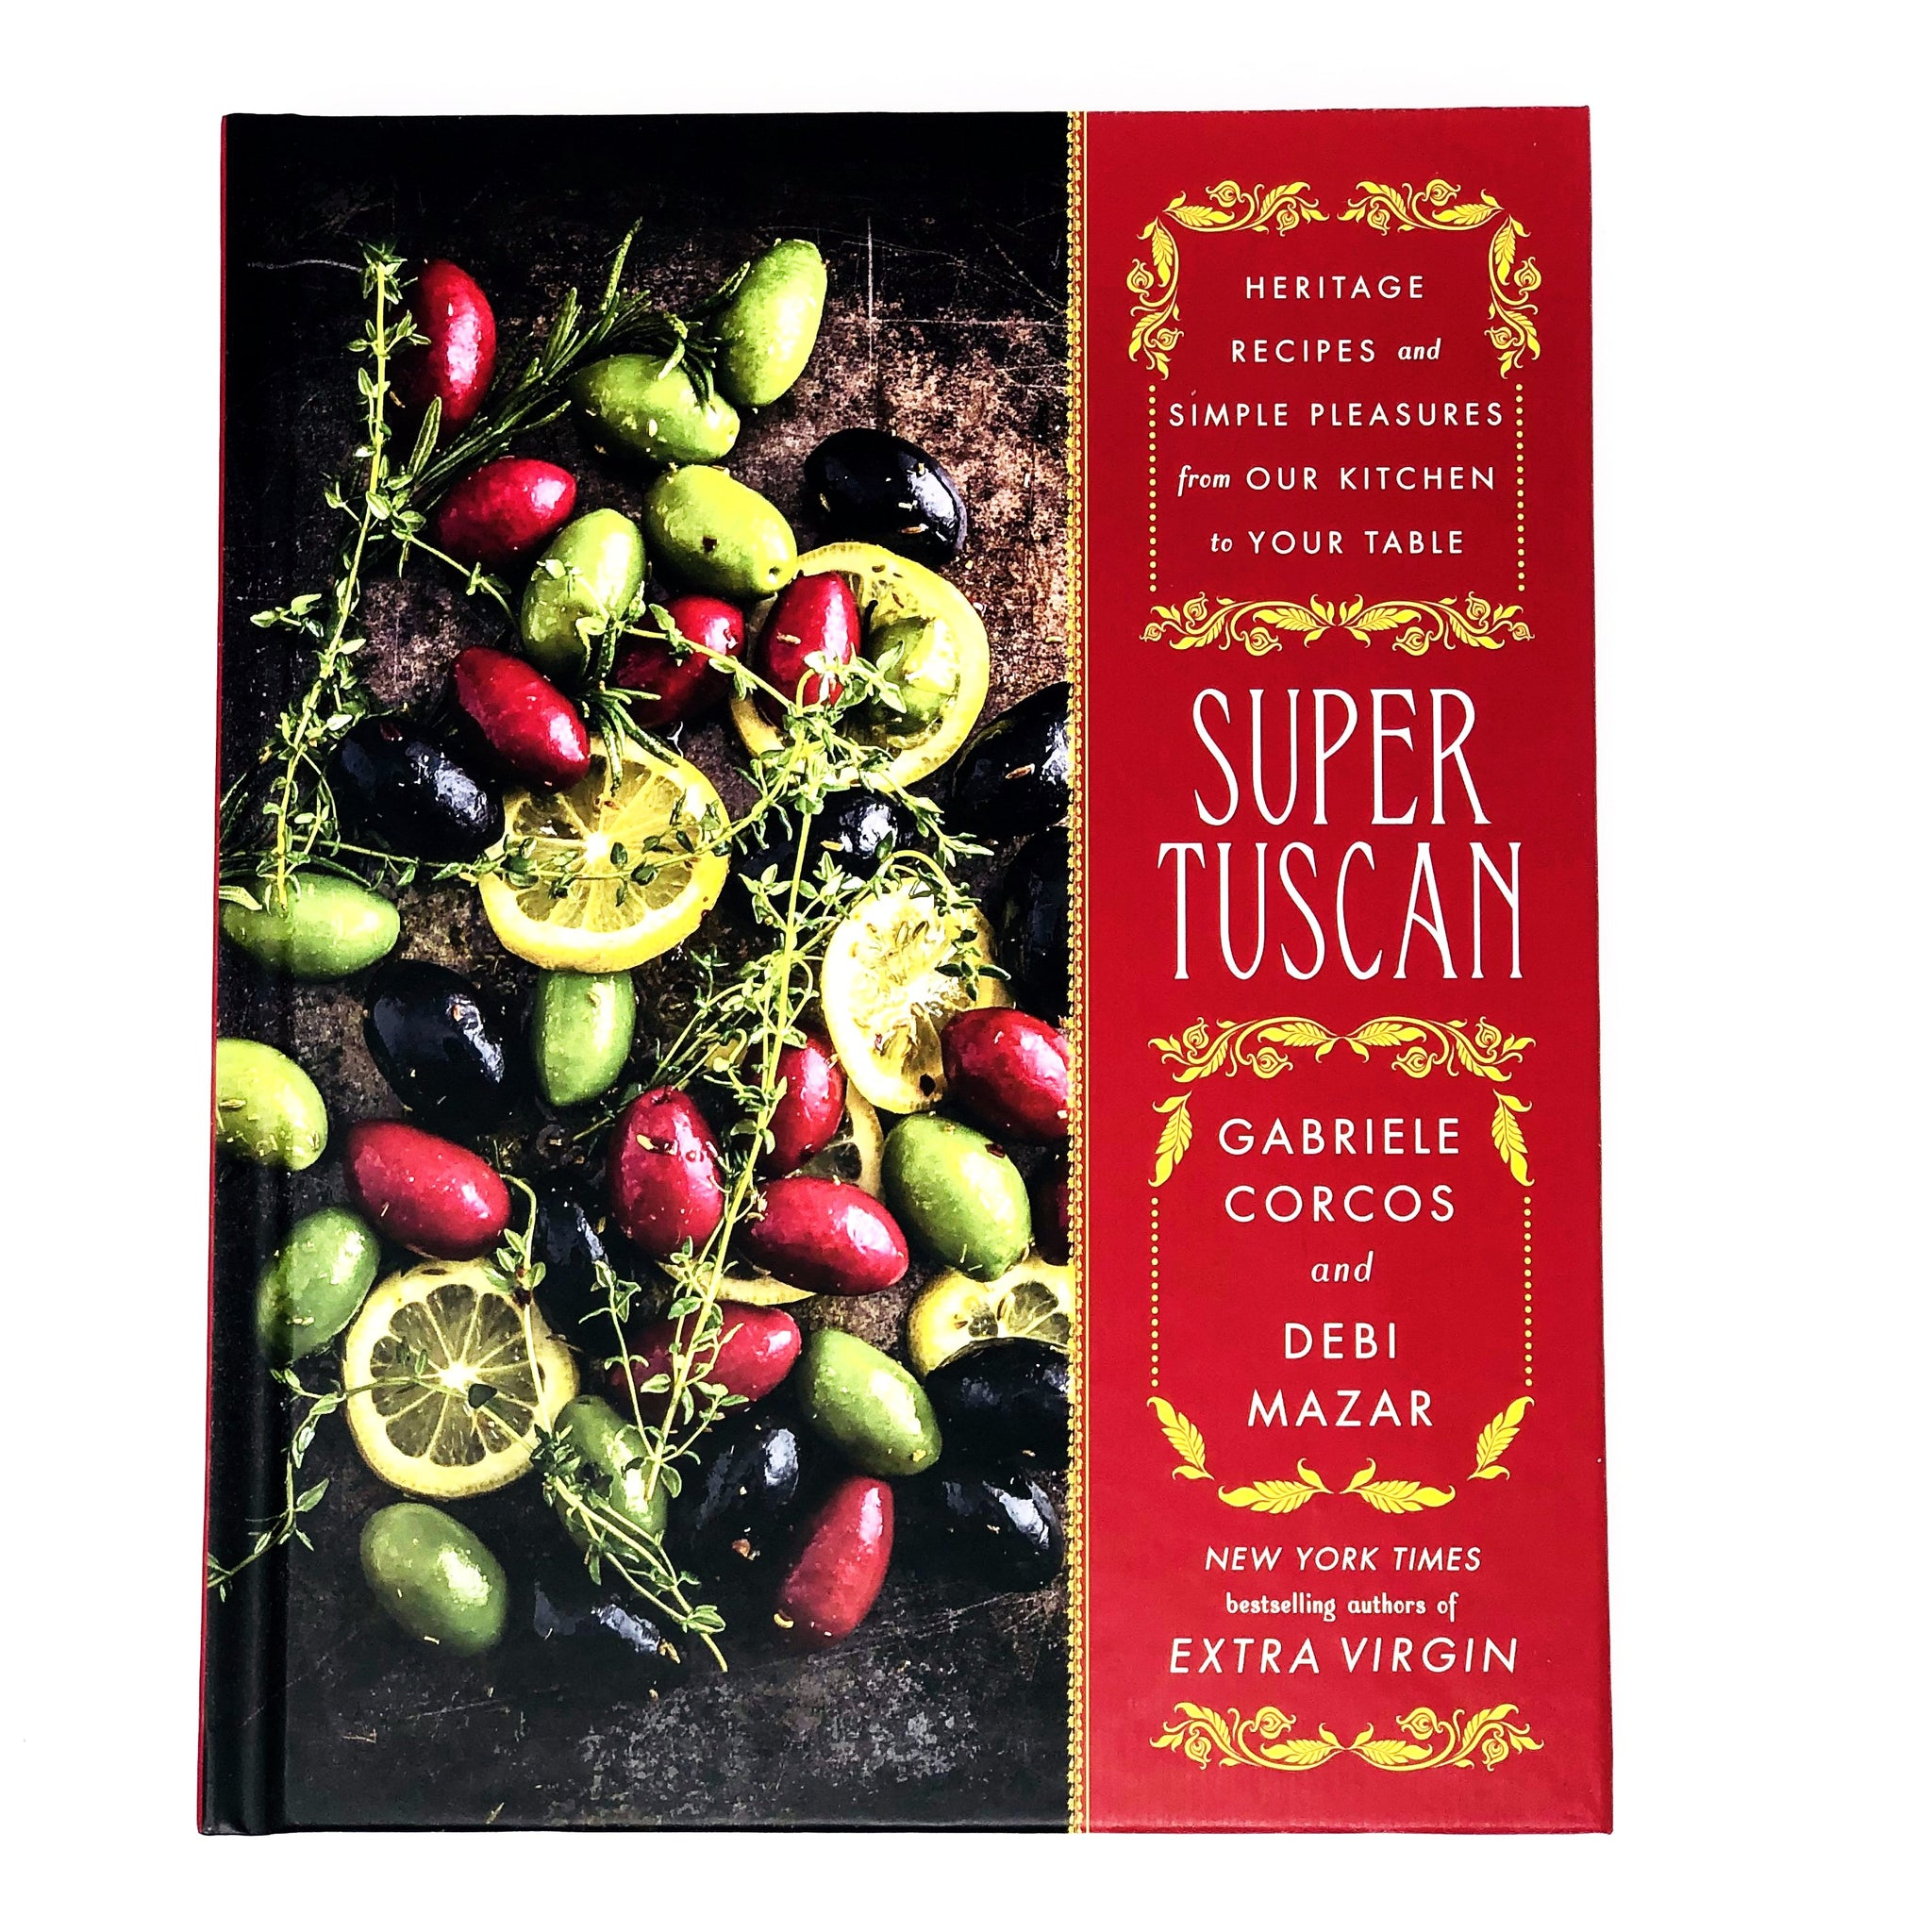 Super Tuscan Heritage Recipes and Simple Pleasures from Our Kitchen to Your Table by Gabriele Corcos & Debi Mazar